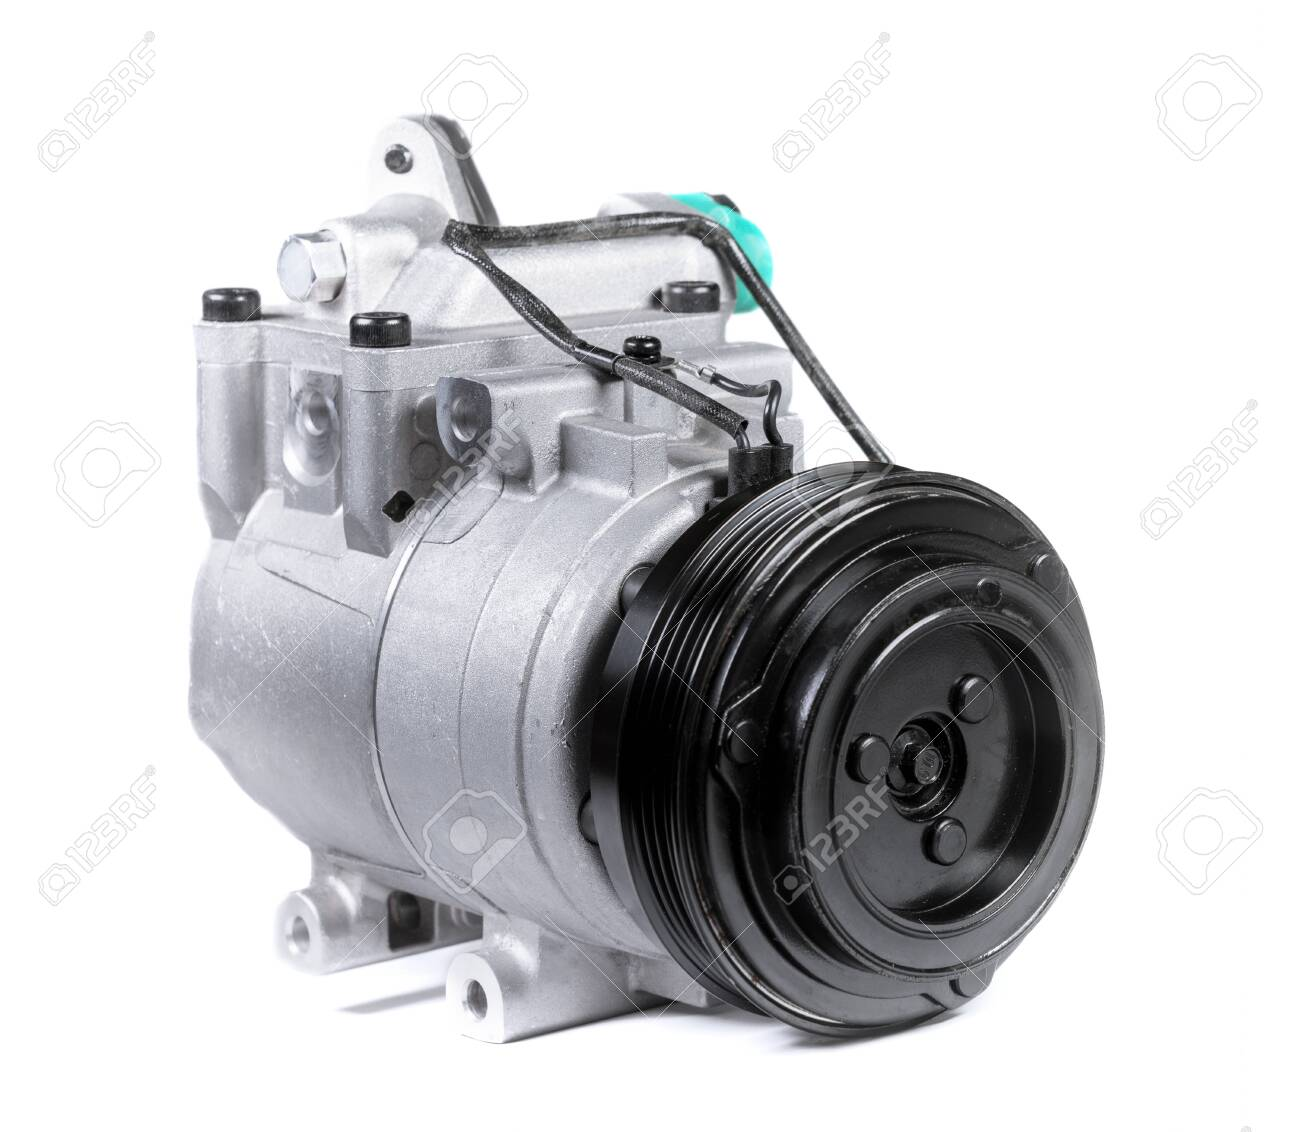 New car air conditioning compressor on isolated white background - 131493186